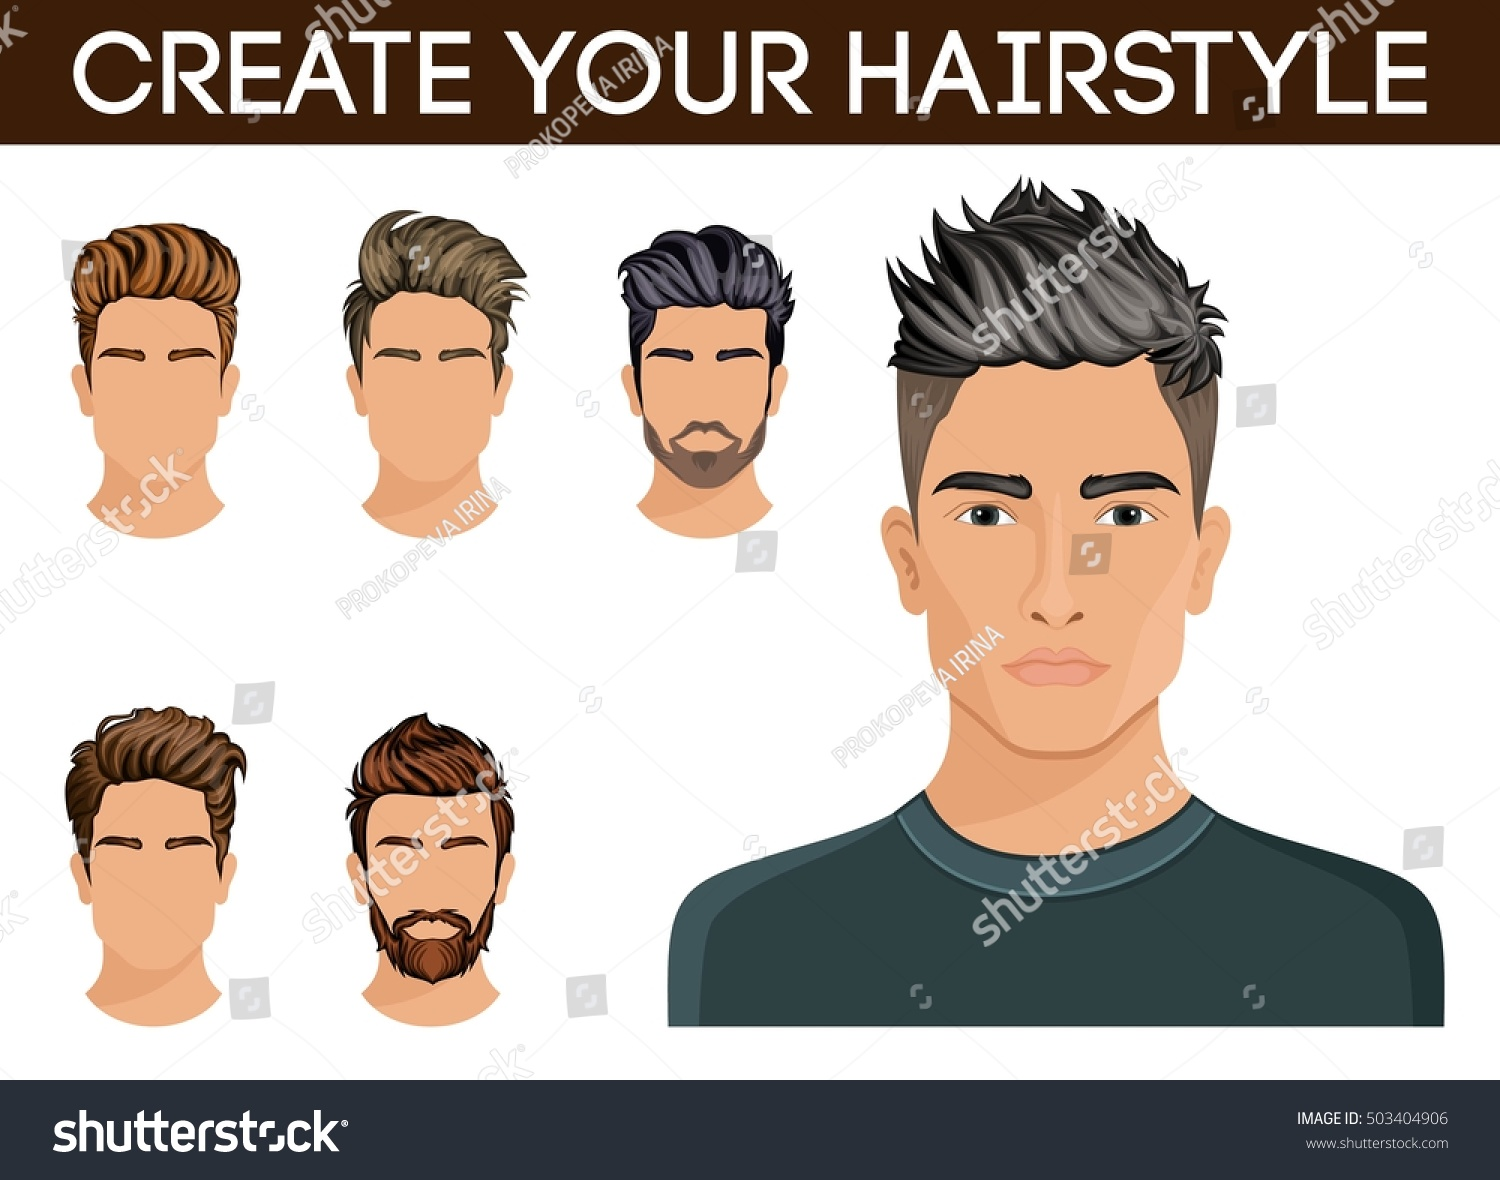 Create Change Hairstyles Men Hair Style Stock Vector Royalty Free